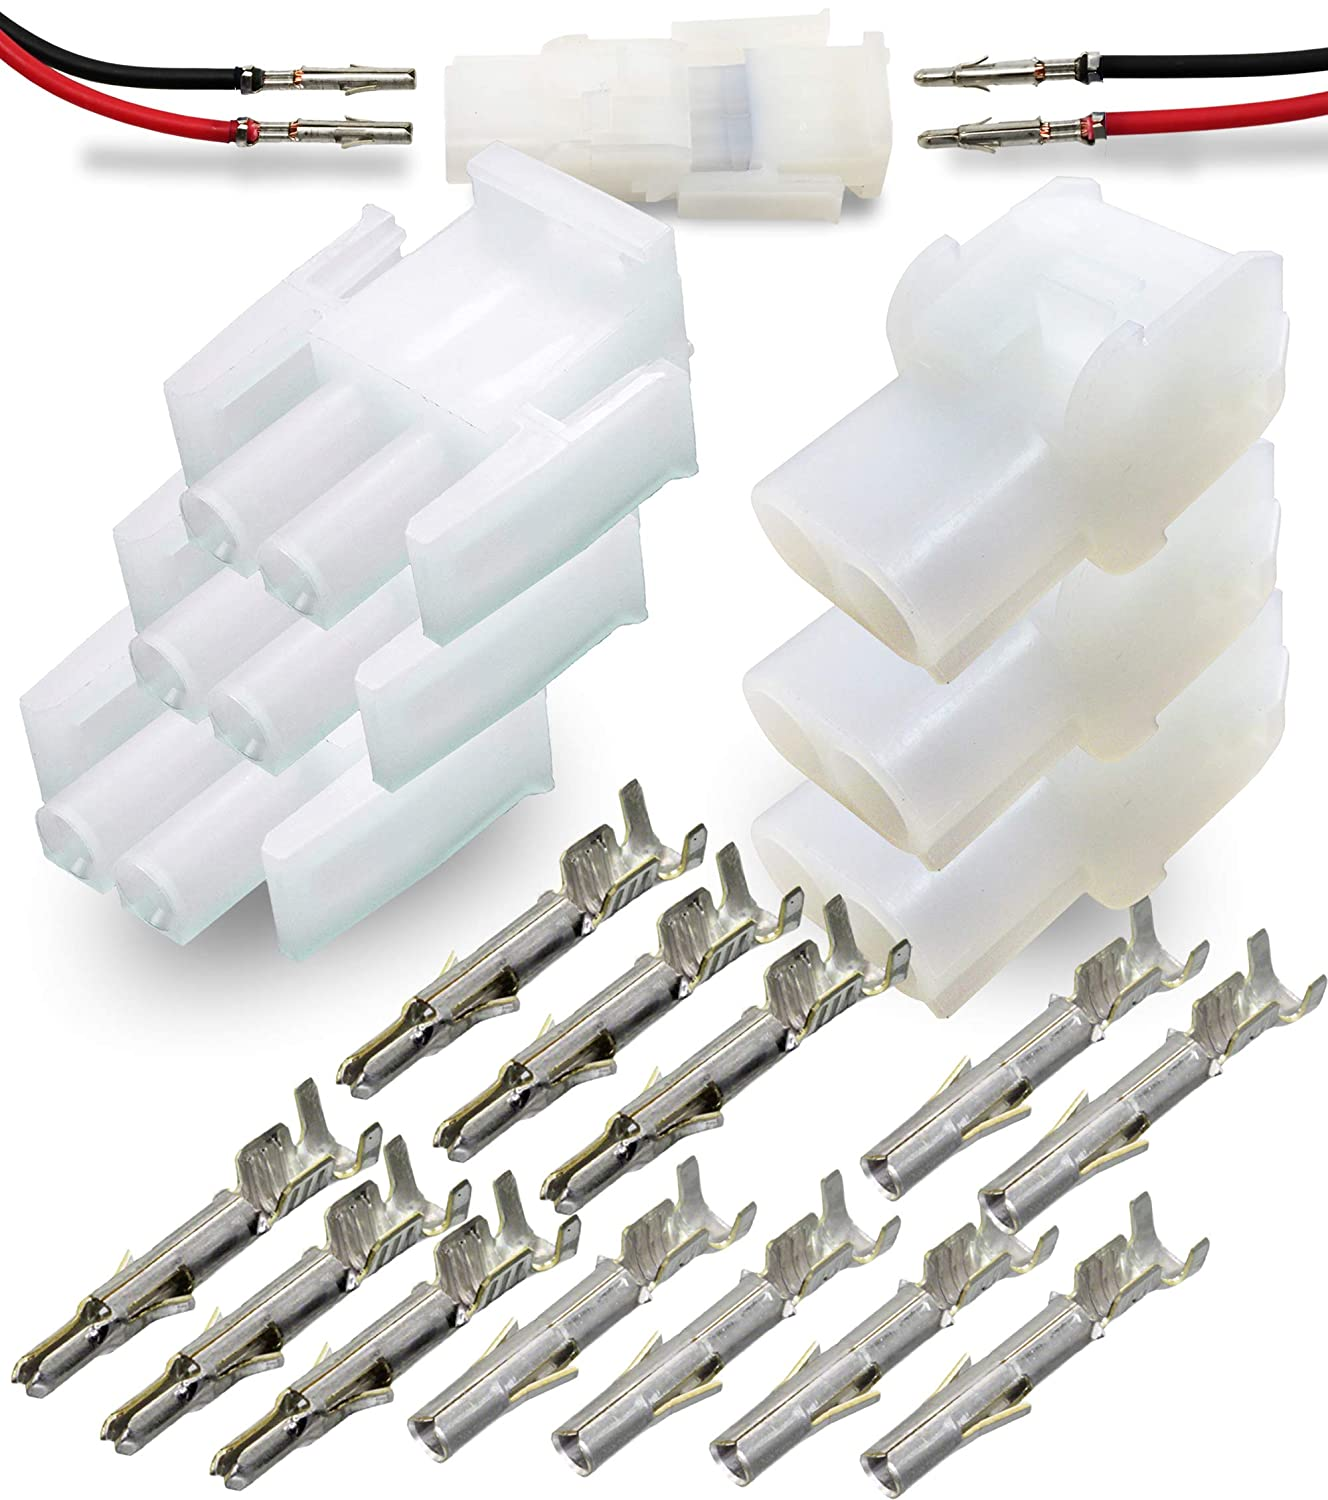 2.13mm D Latch Lock 20A Connector w//14-20 AWG 6 Pin -4Set Wire Connector Molex MLX